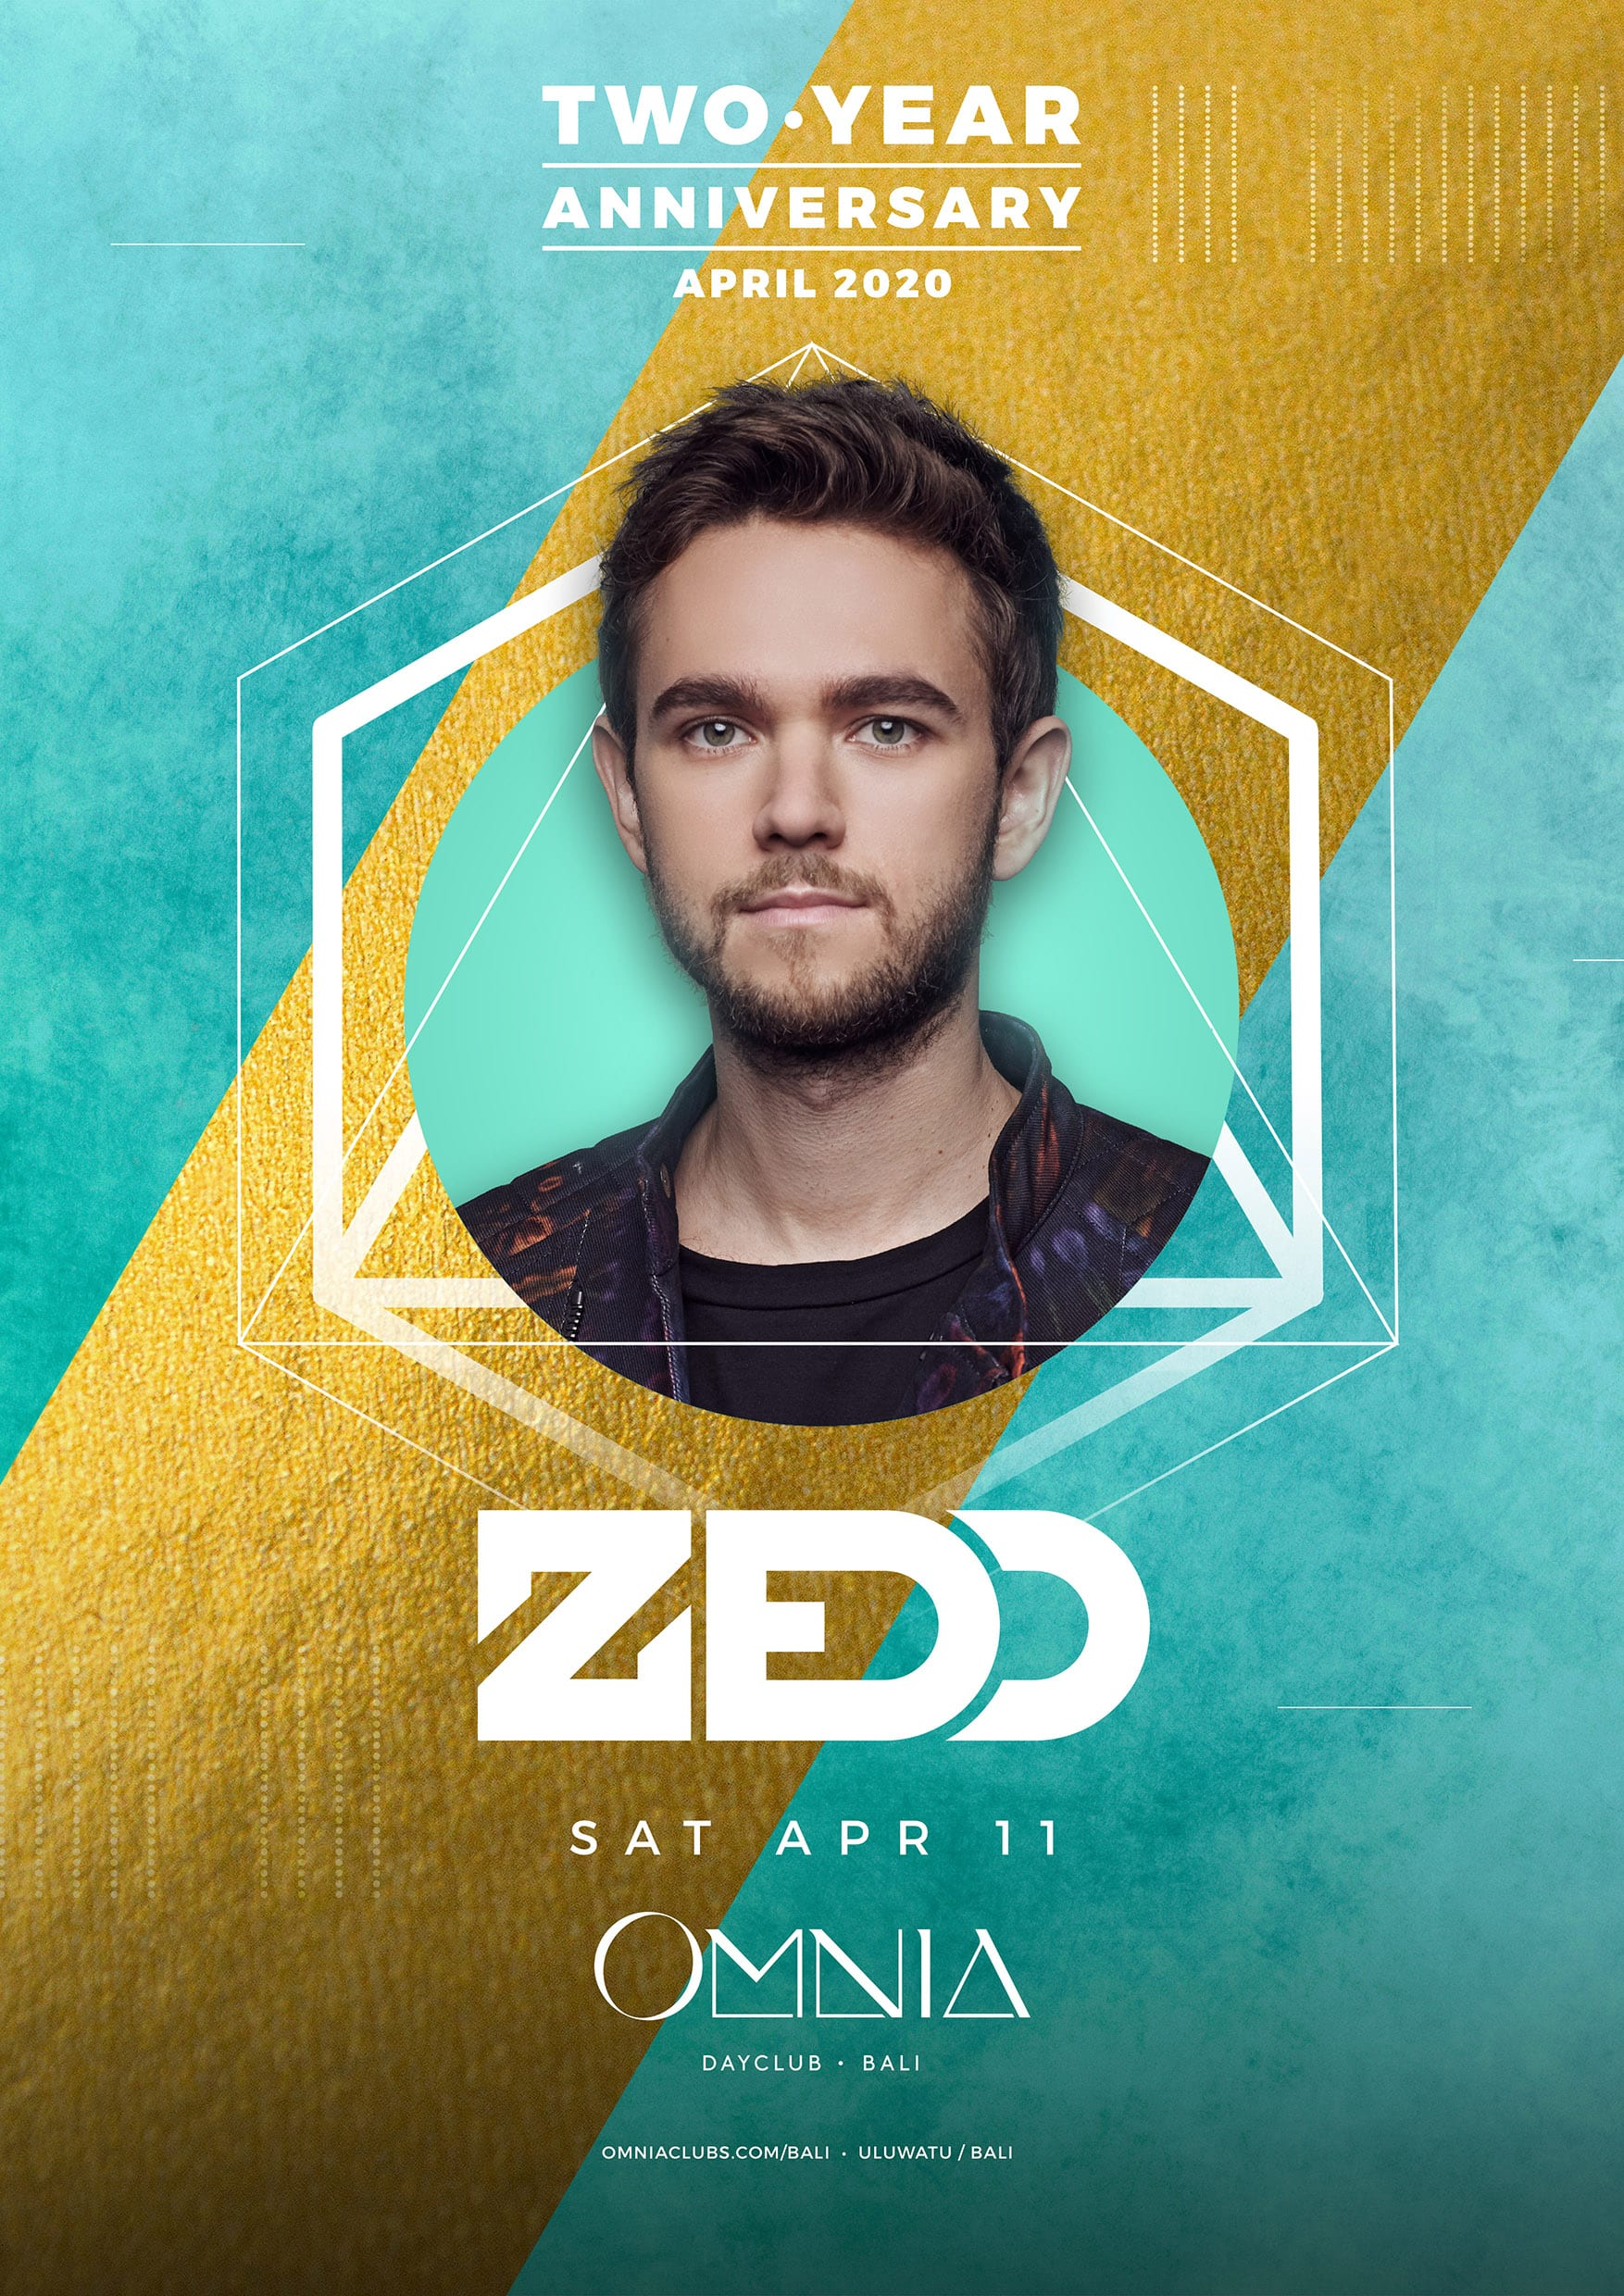 OMNIA Bali Two Year Anniversary with Zedd